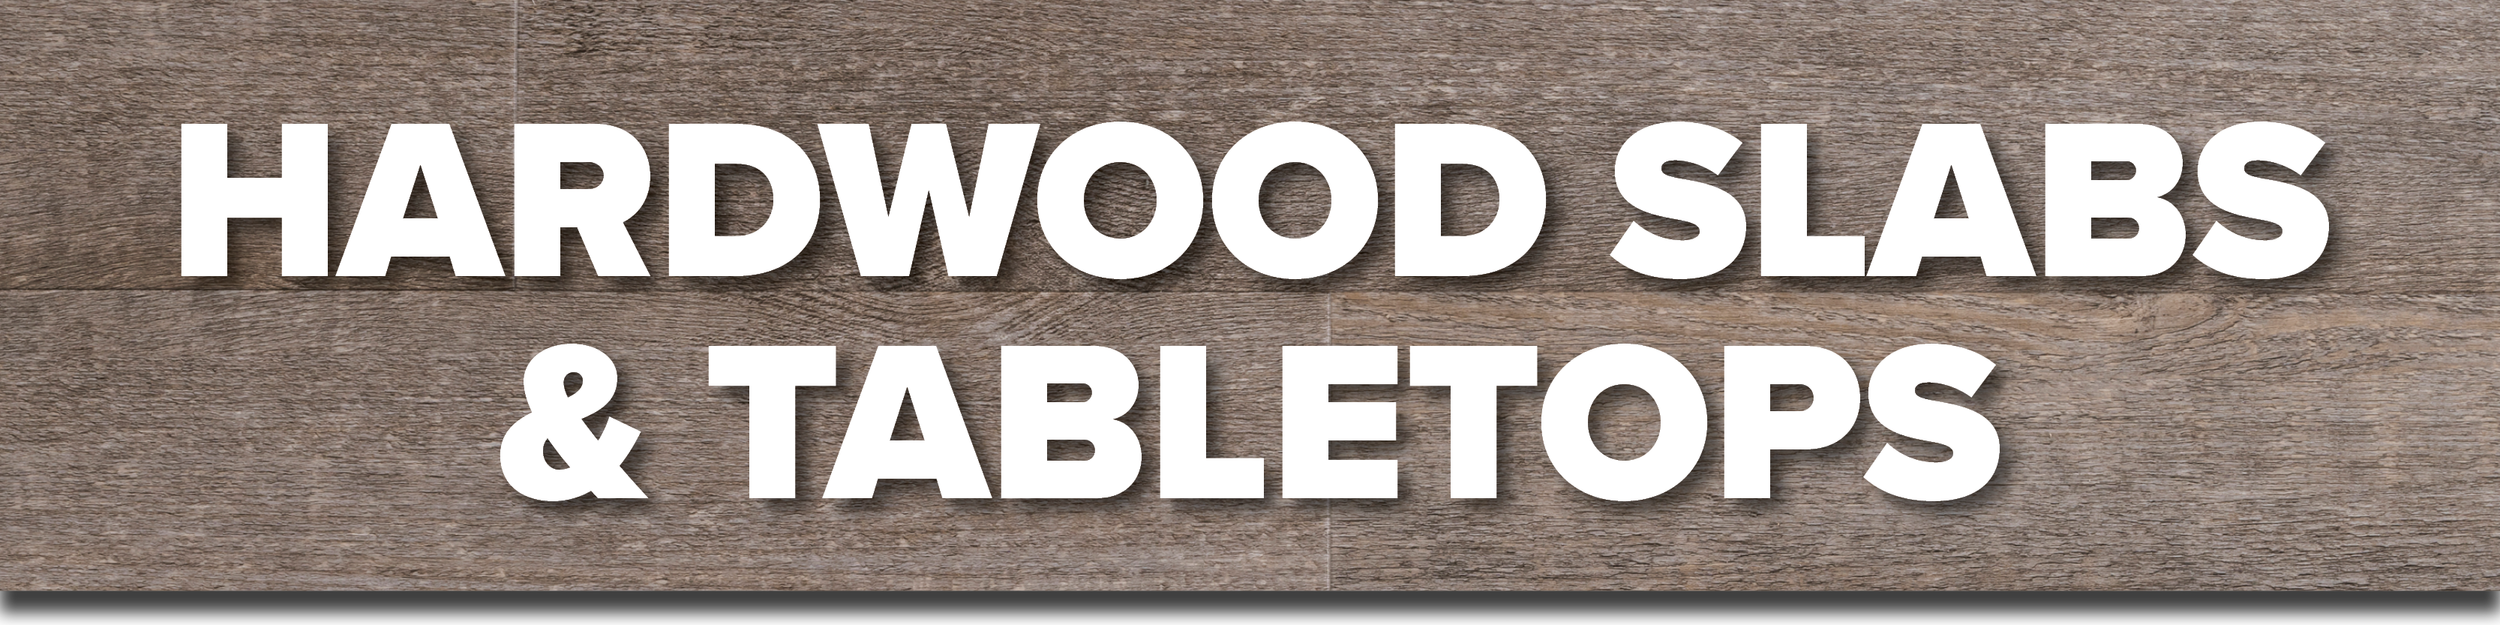 Hardwood Slabs & Tabletops.png